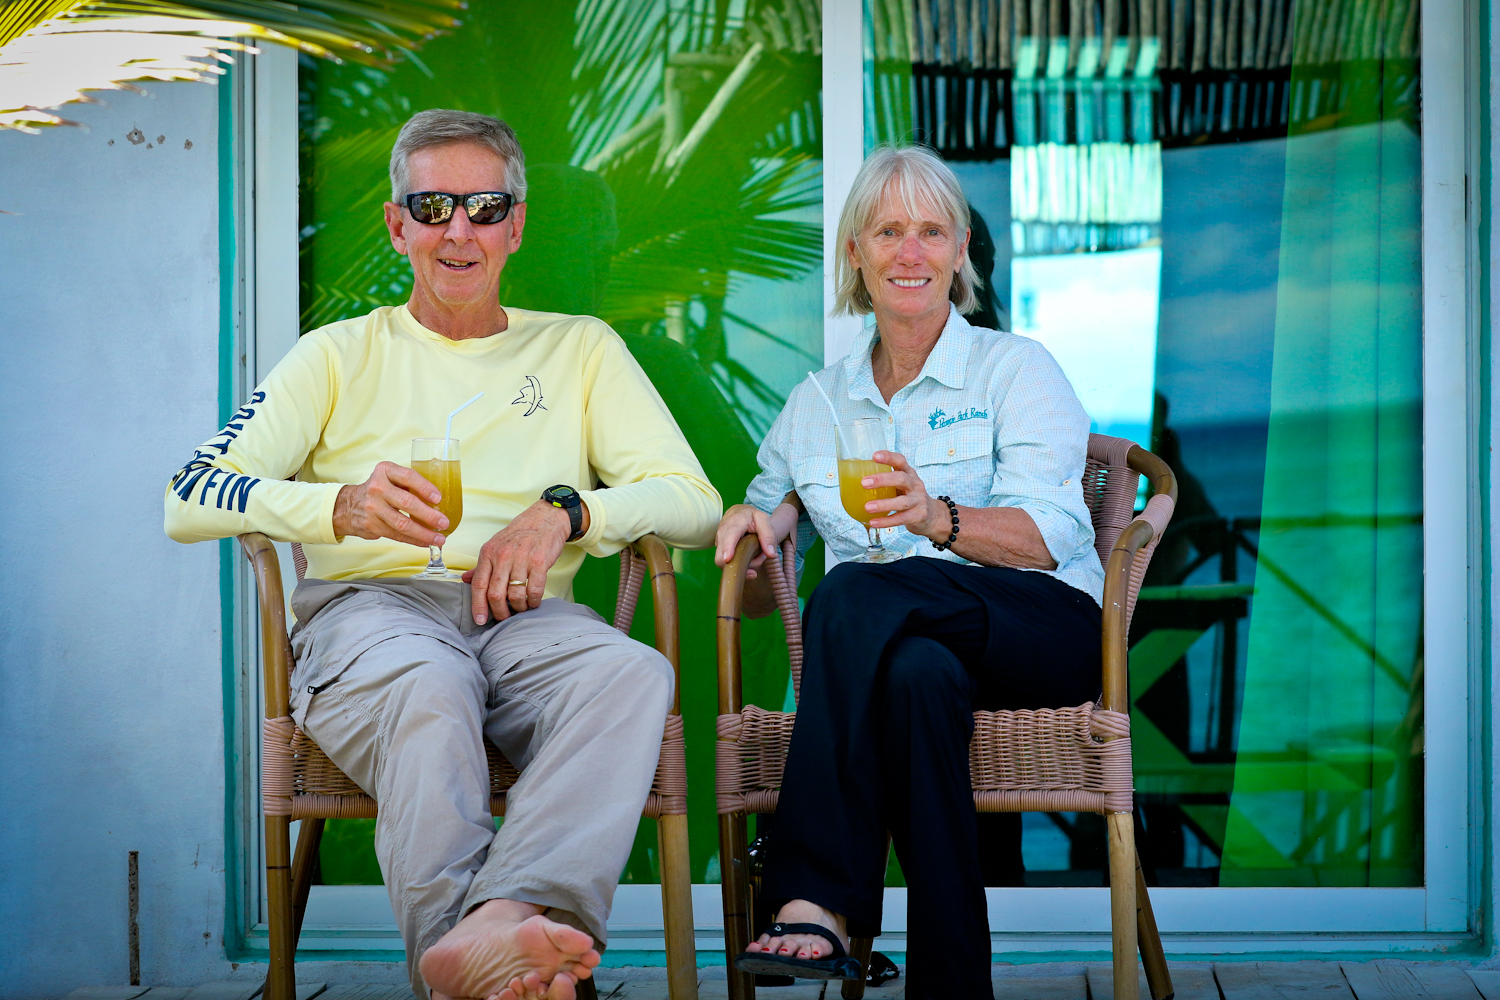 Guests enjoy a rum drink after fishing